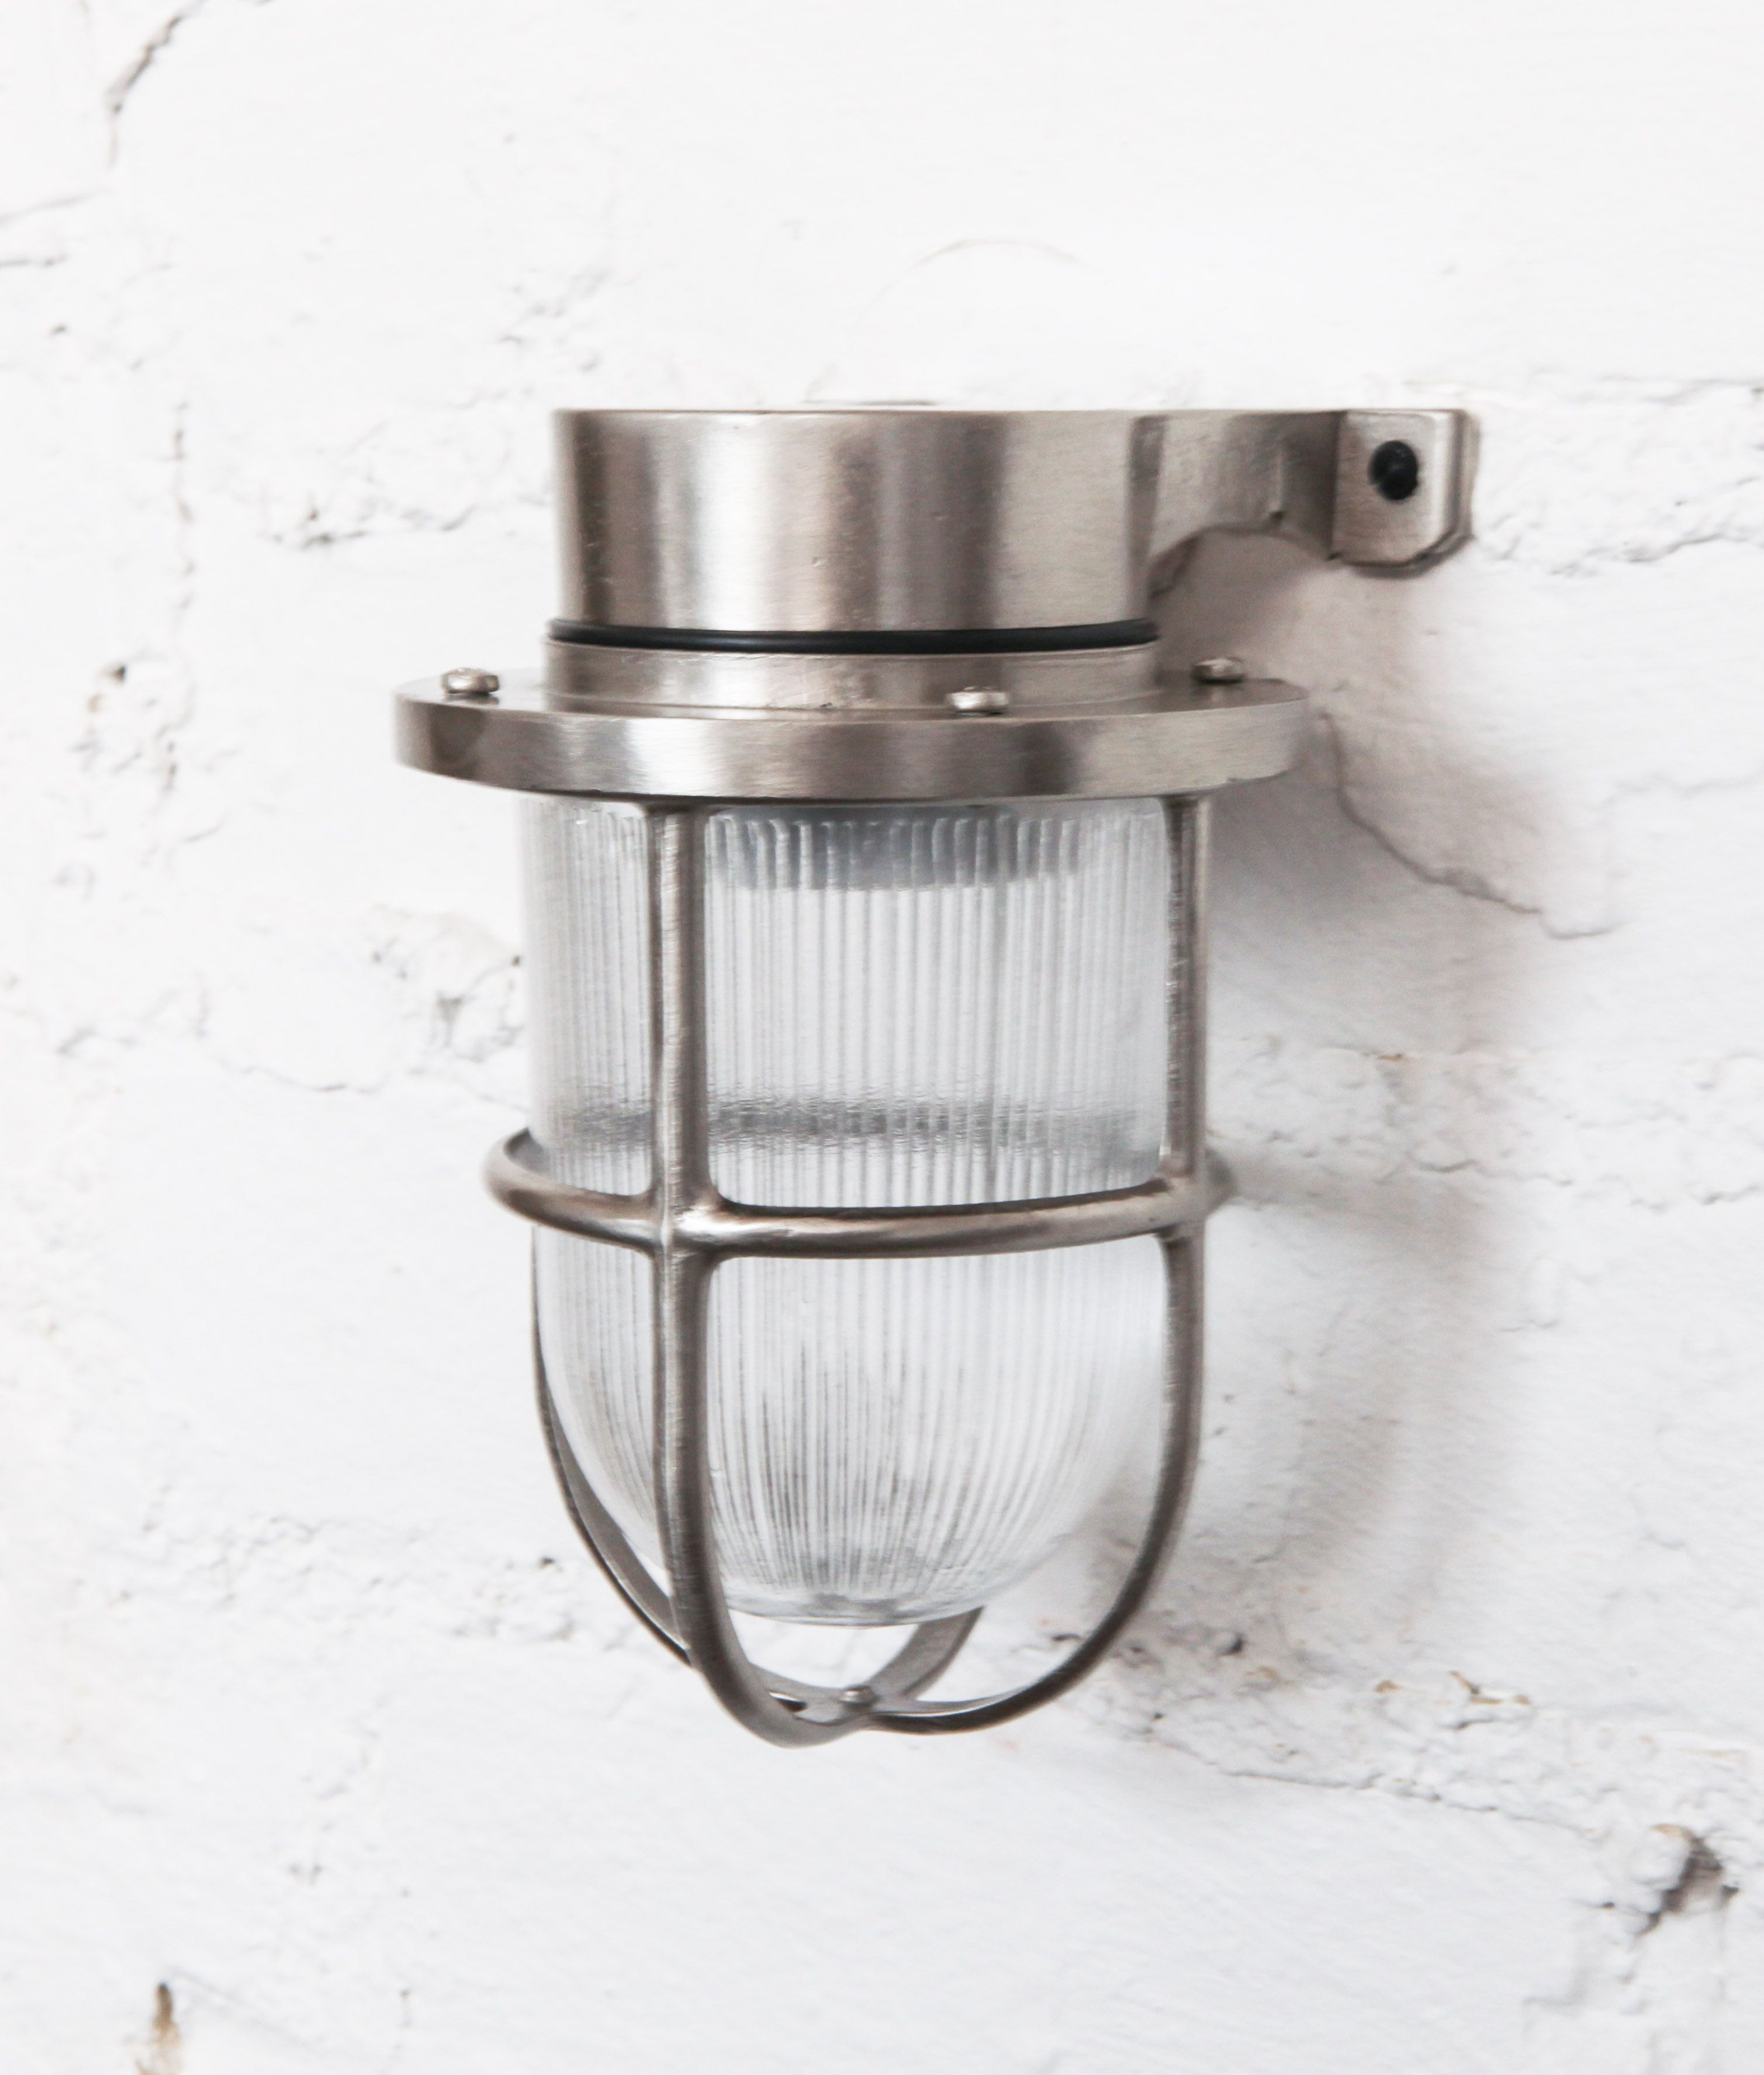 Dowsing and reynolds 70 bulkhead wall light forgotten silver 1g our simon bulkhead light is perfect for using as industrial bathroom lighting hes a downlight wall light aloadofball Images